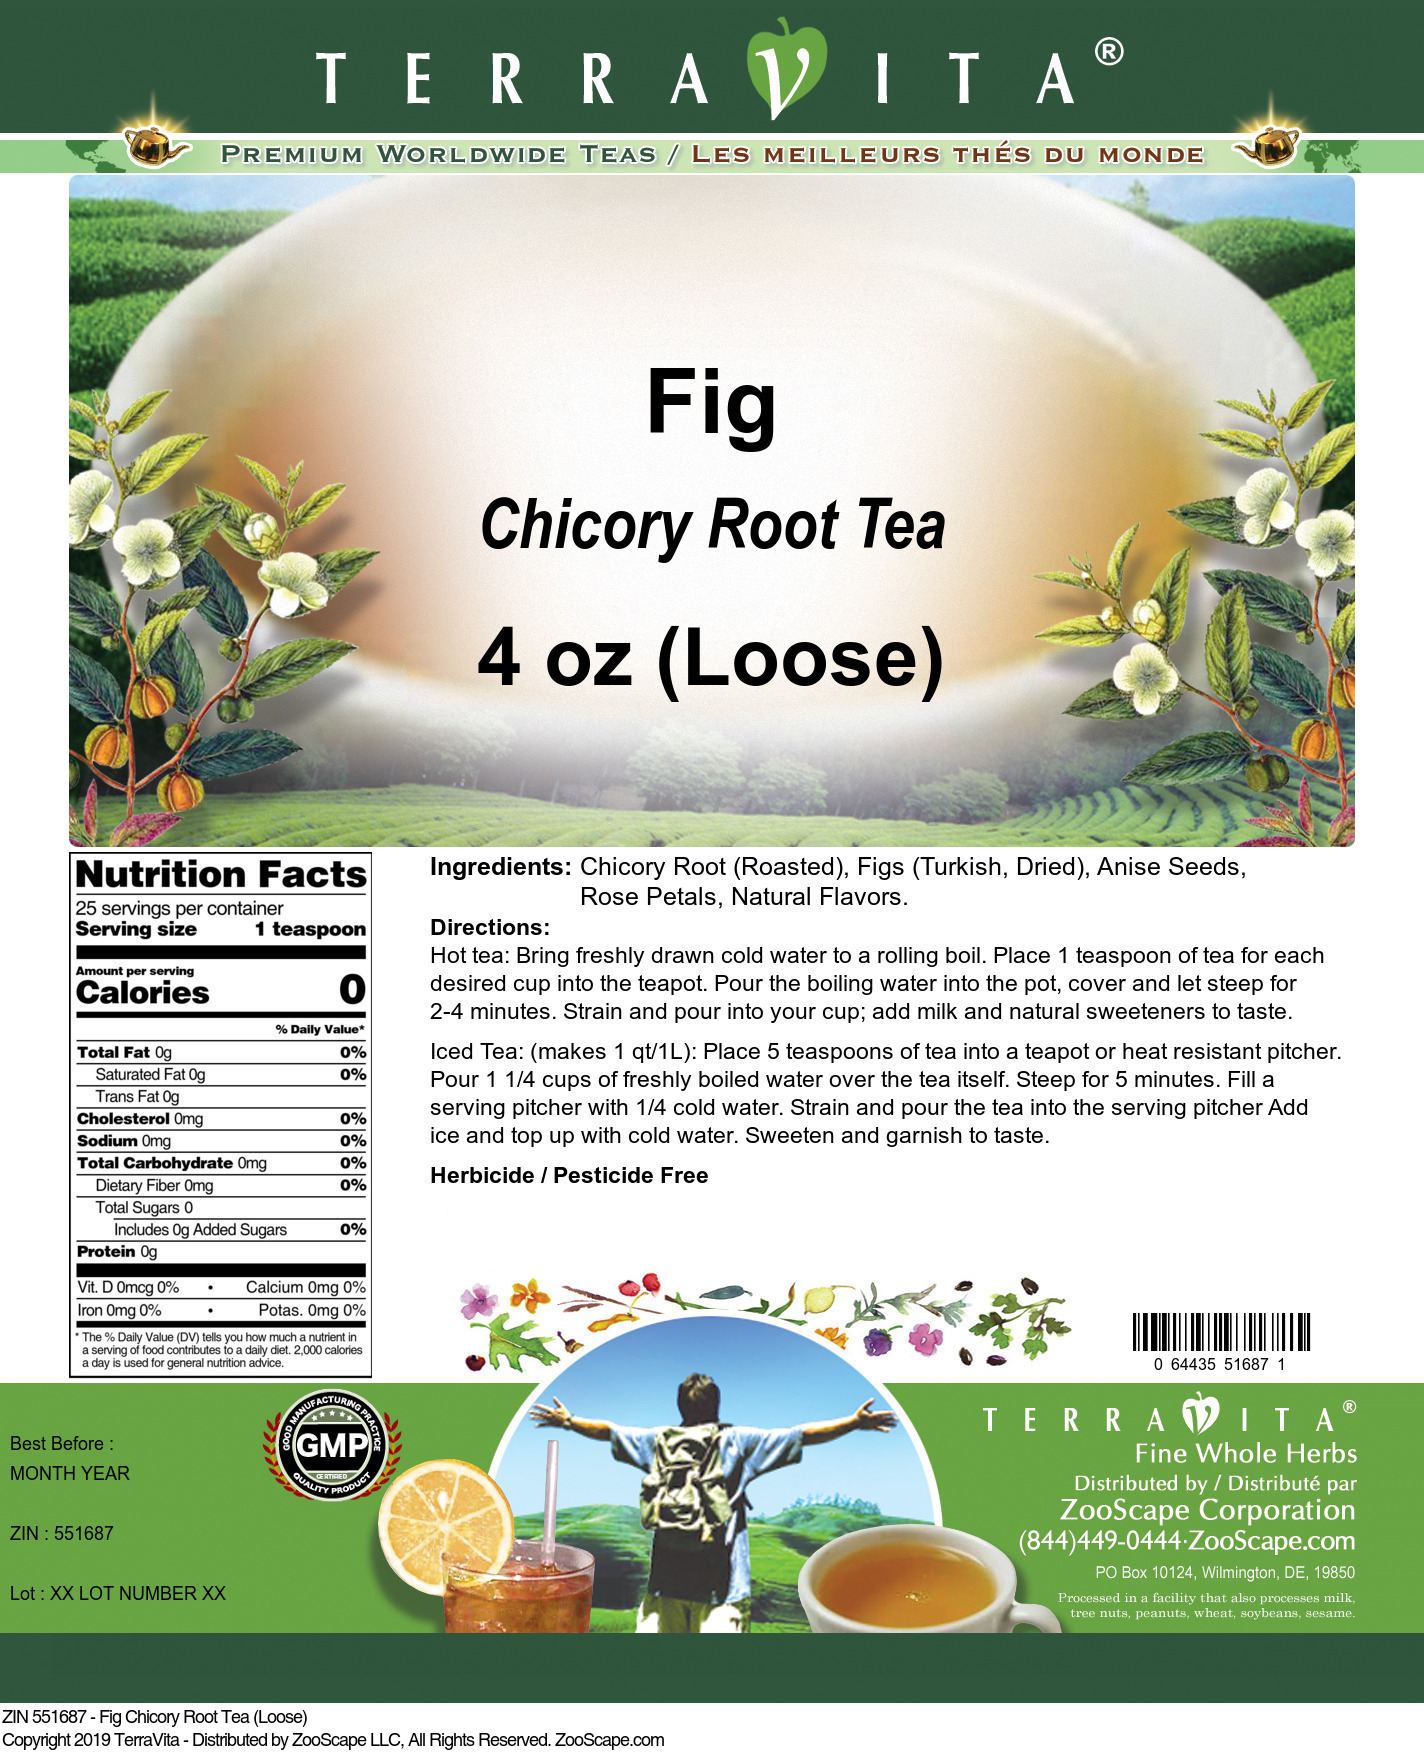 Fig Chicory Root